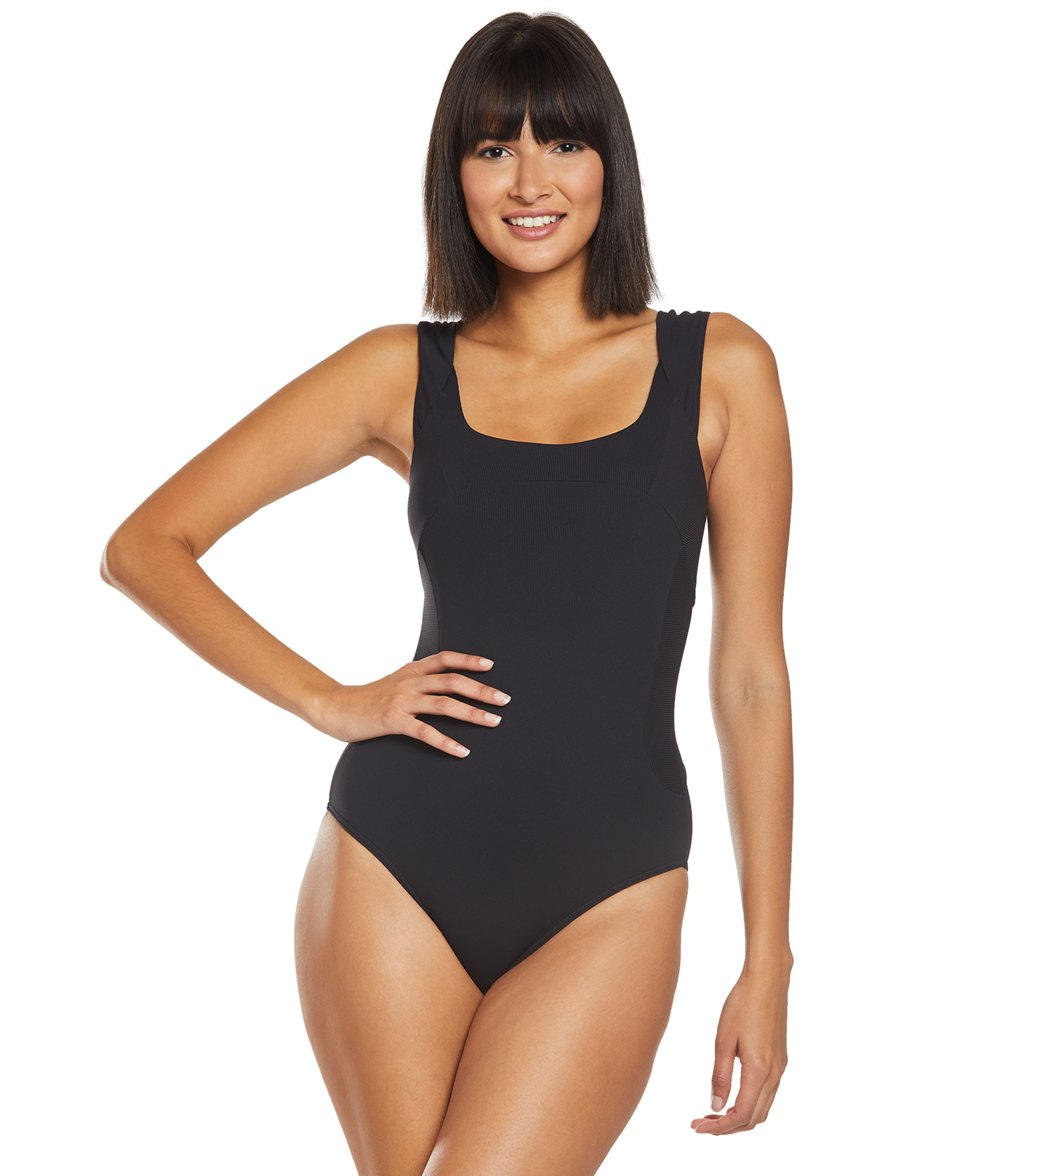 d22b45ab0303 Prana Ribbed Loren One Piece Swimsuit at SwimOutlet.com - Free Shipping